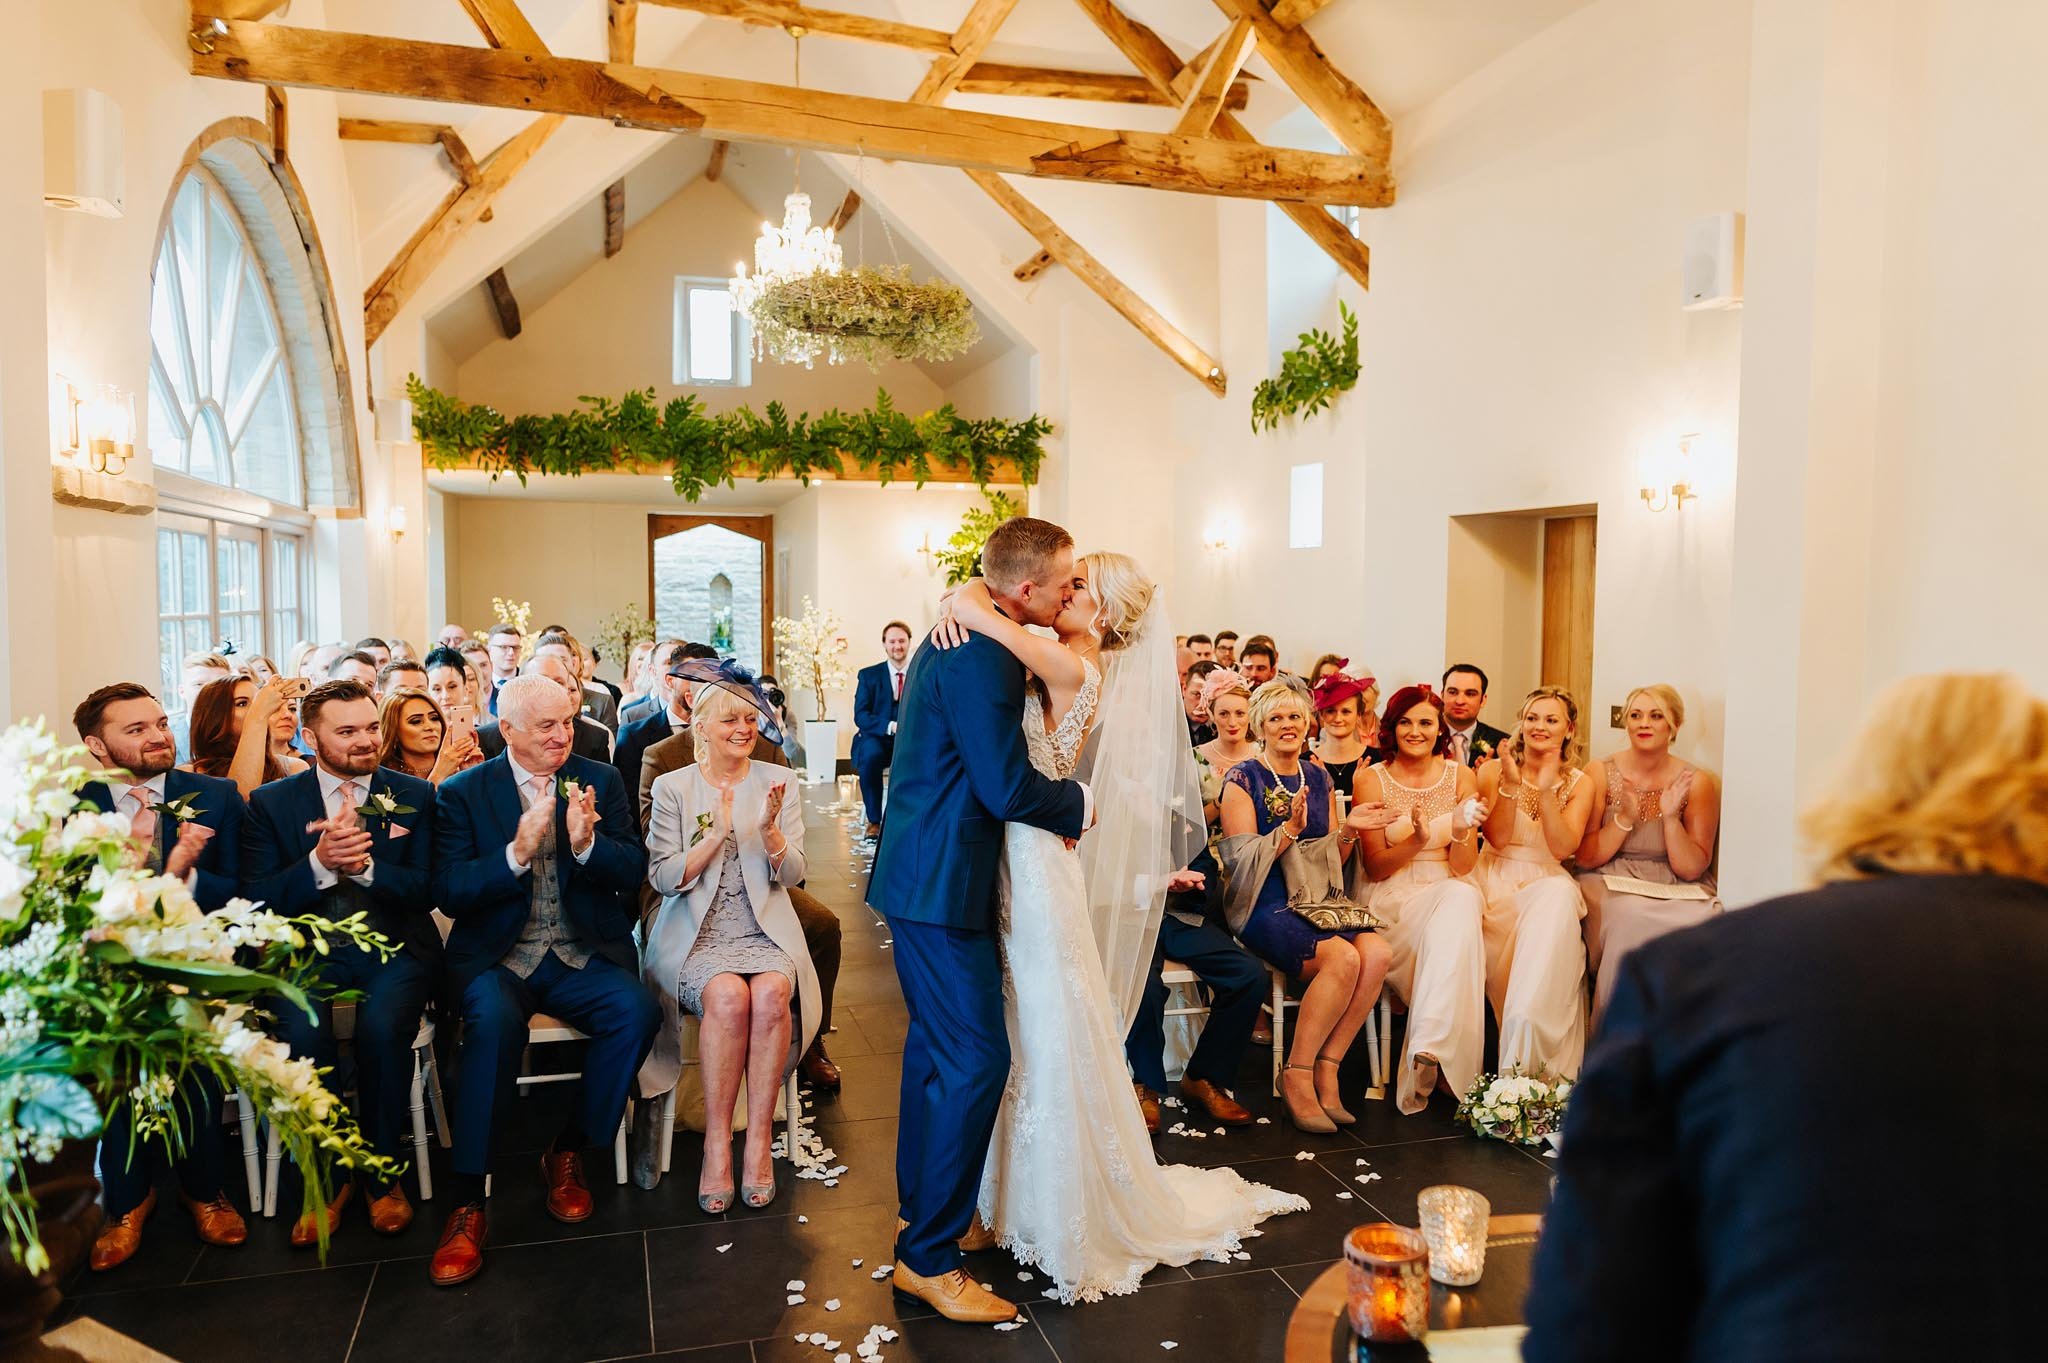 Lemore Manor wedding, Herefordshire - West Midlands | Sadie + Ken 35